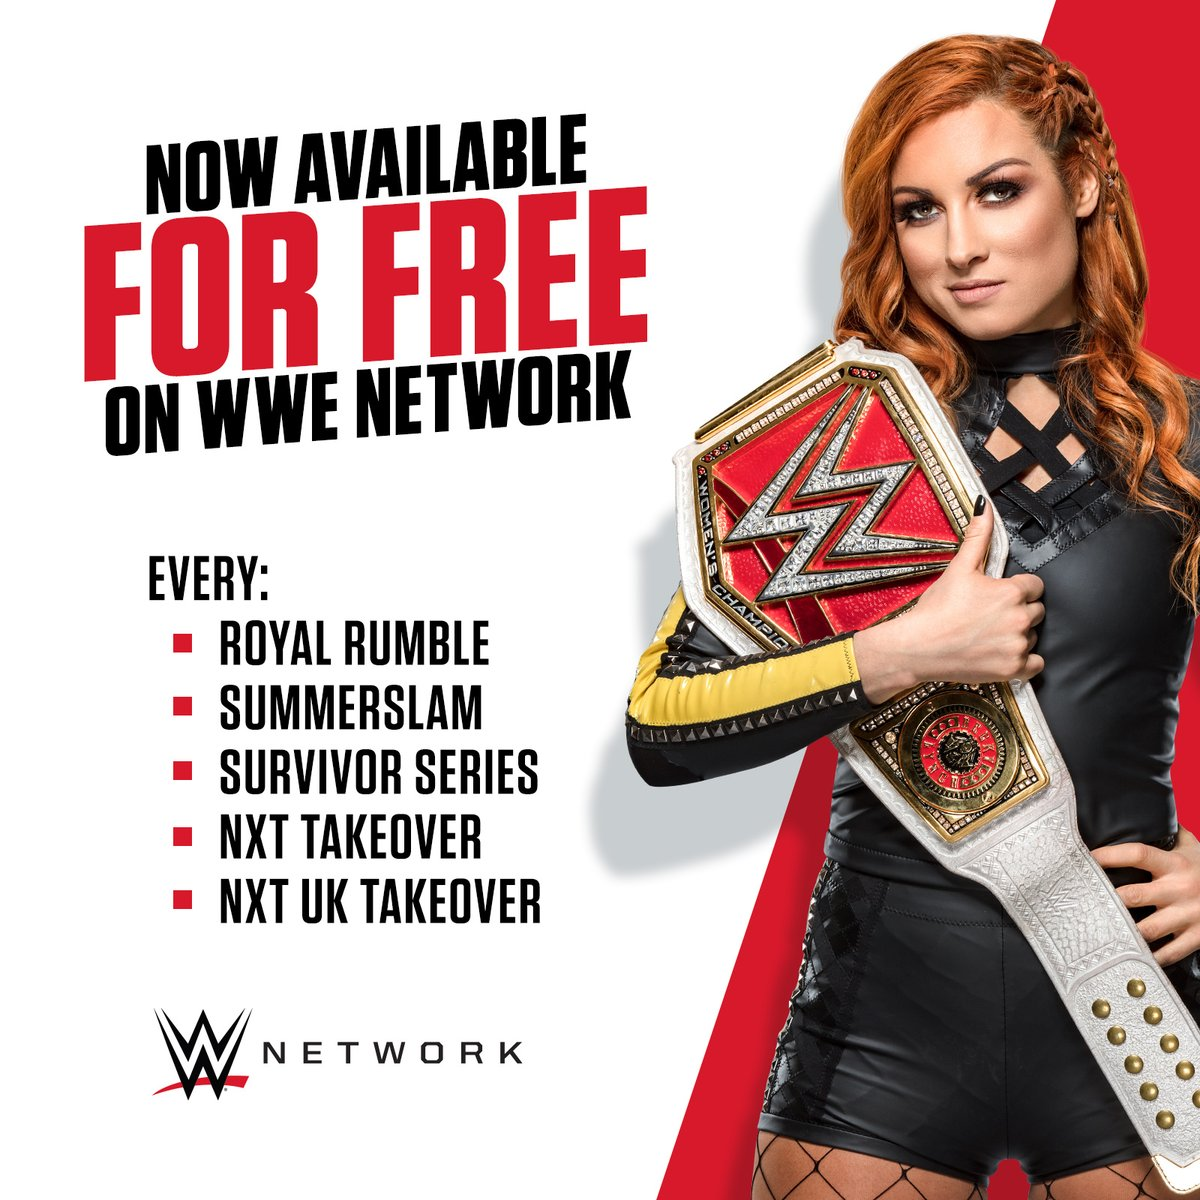 Network up wwe sign Be aware